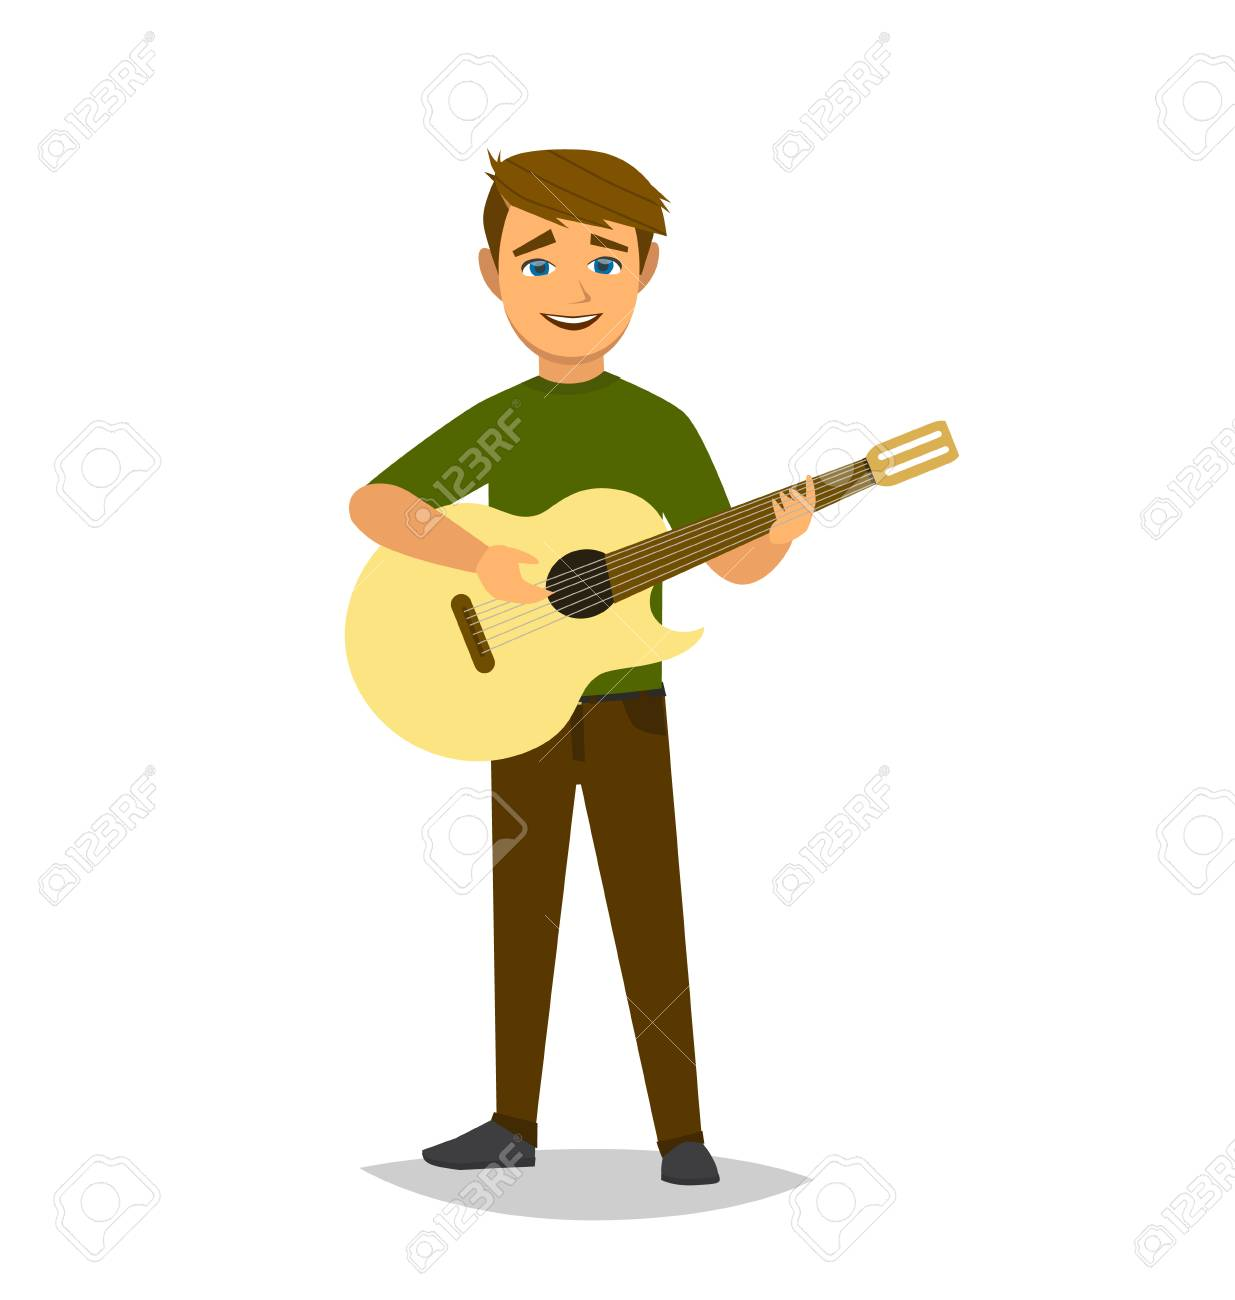 The boy plays the guitar. Vector illustration in cartoon style. Vector illustration in Multan style. - 95030336